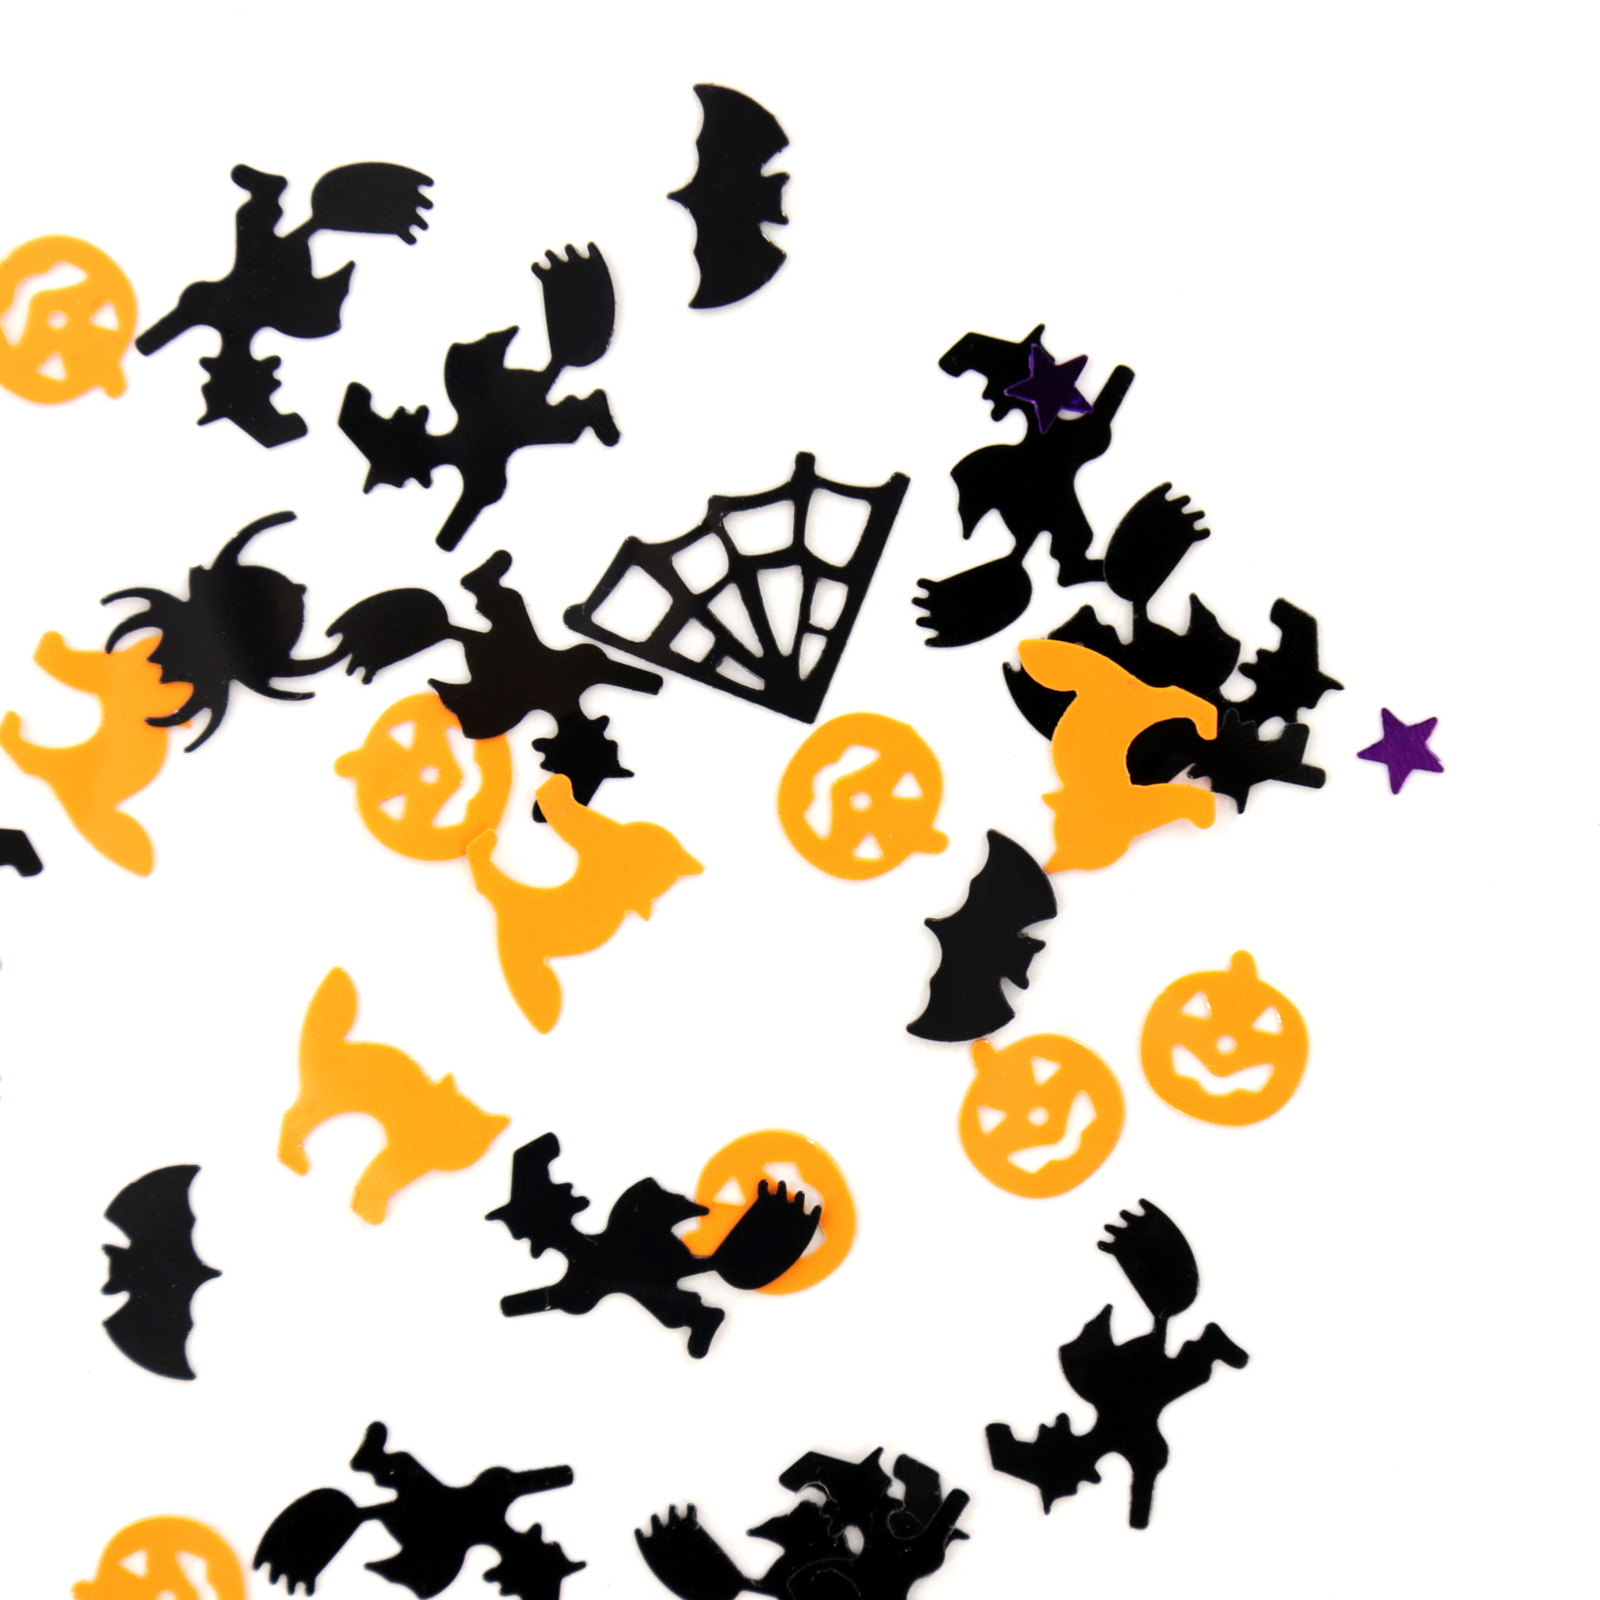 Image 5 - 15g Halloween Confetti Pumpkin Spider Bat Witch Spider web Sprinkles Table Confetti Bright Halloween Night Decor Party Supplies-in Party DIY Decorations from Home & Garden